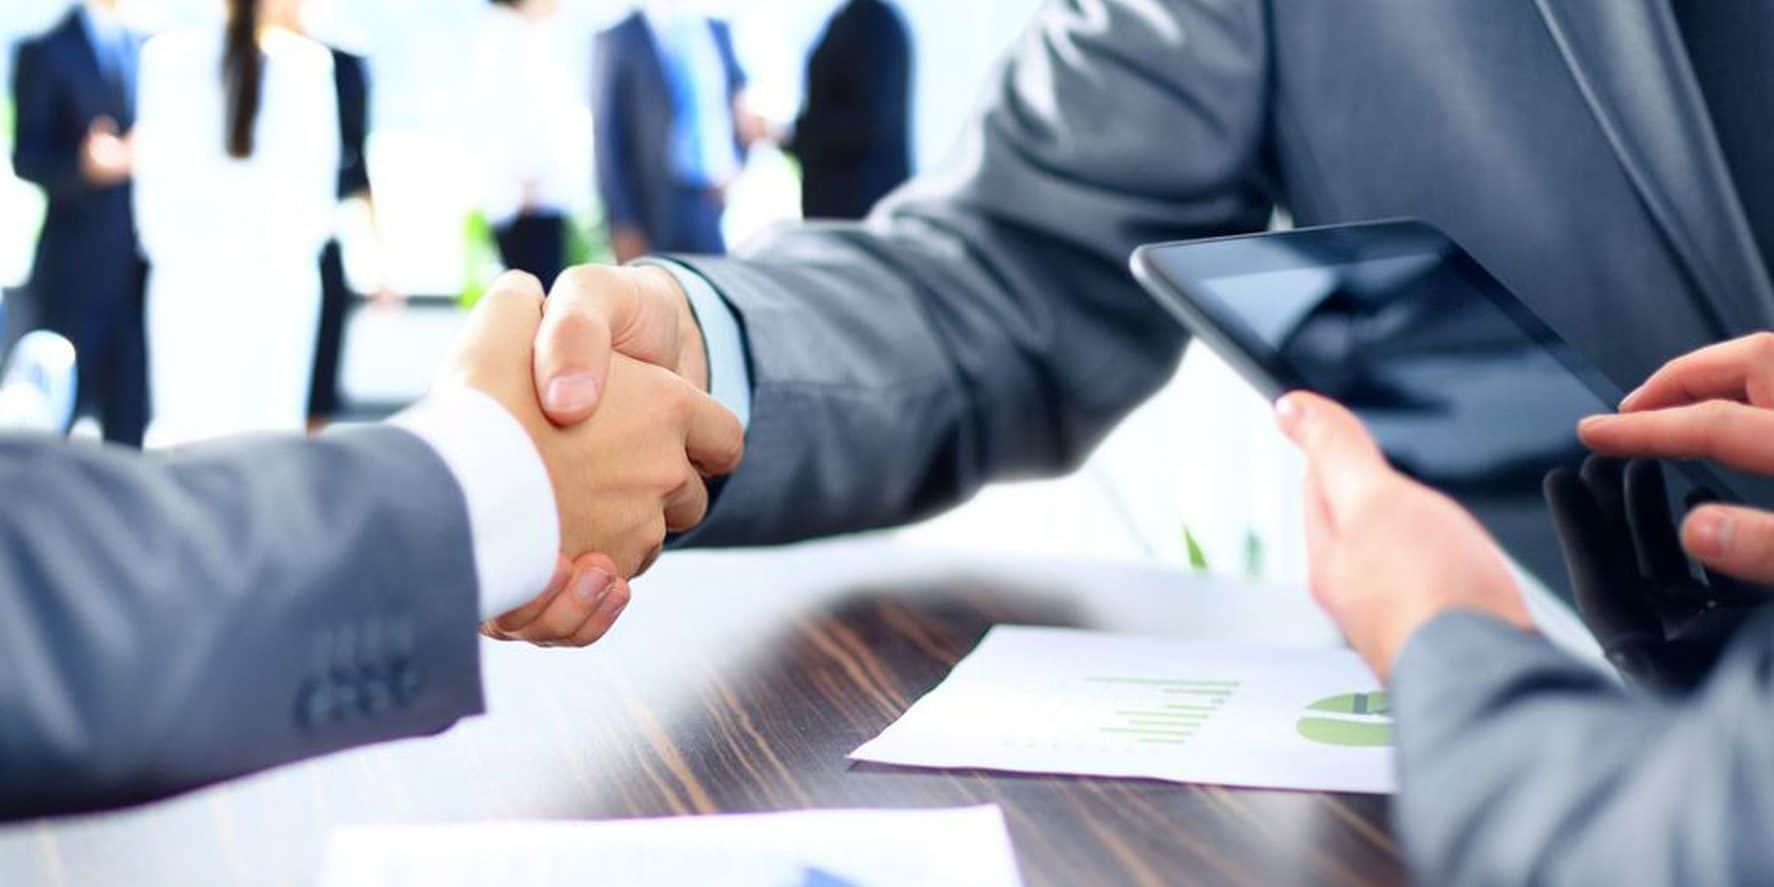 How to Hire an Immigration Consultant in Pakistan?